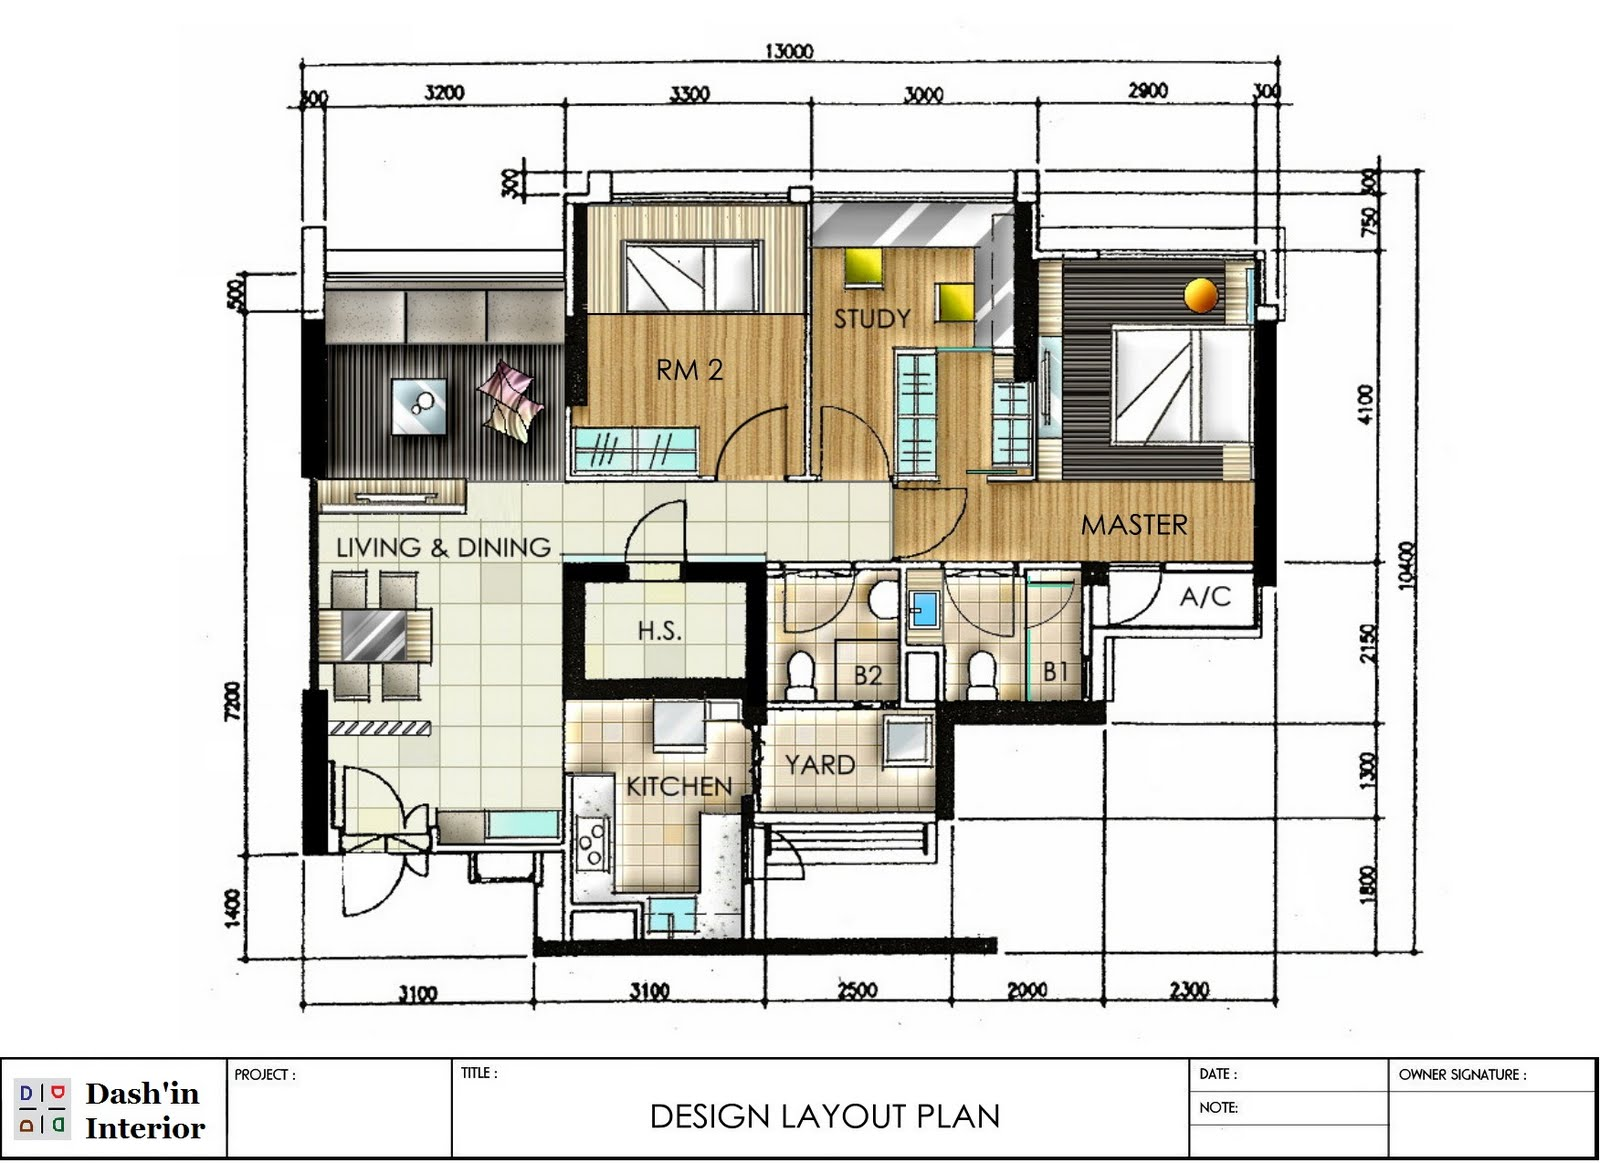 Stunning floor plan layout design 24 photos house plans for Building floor plan designer